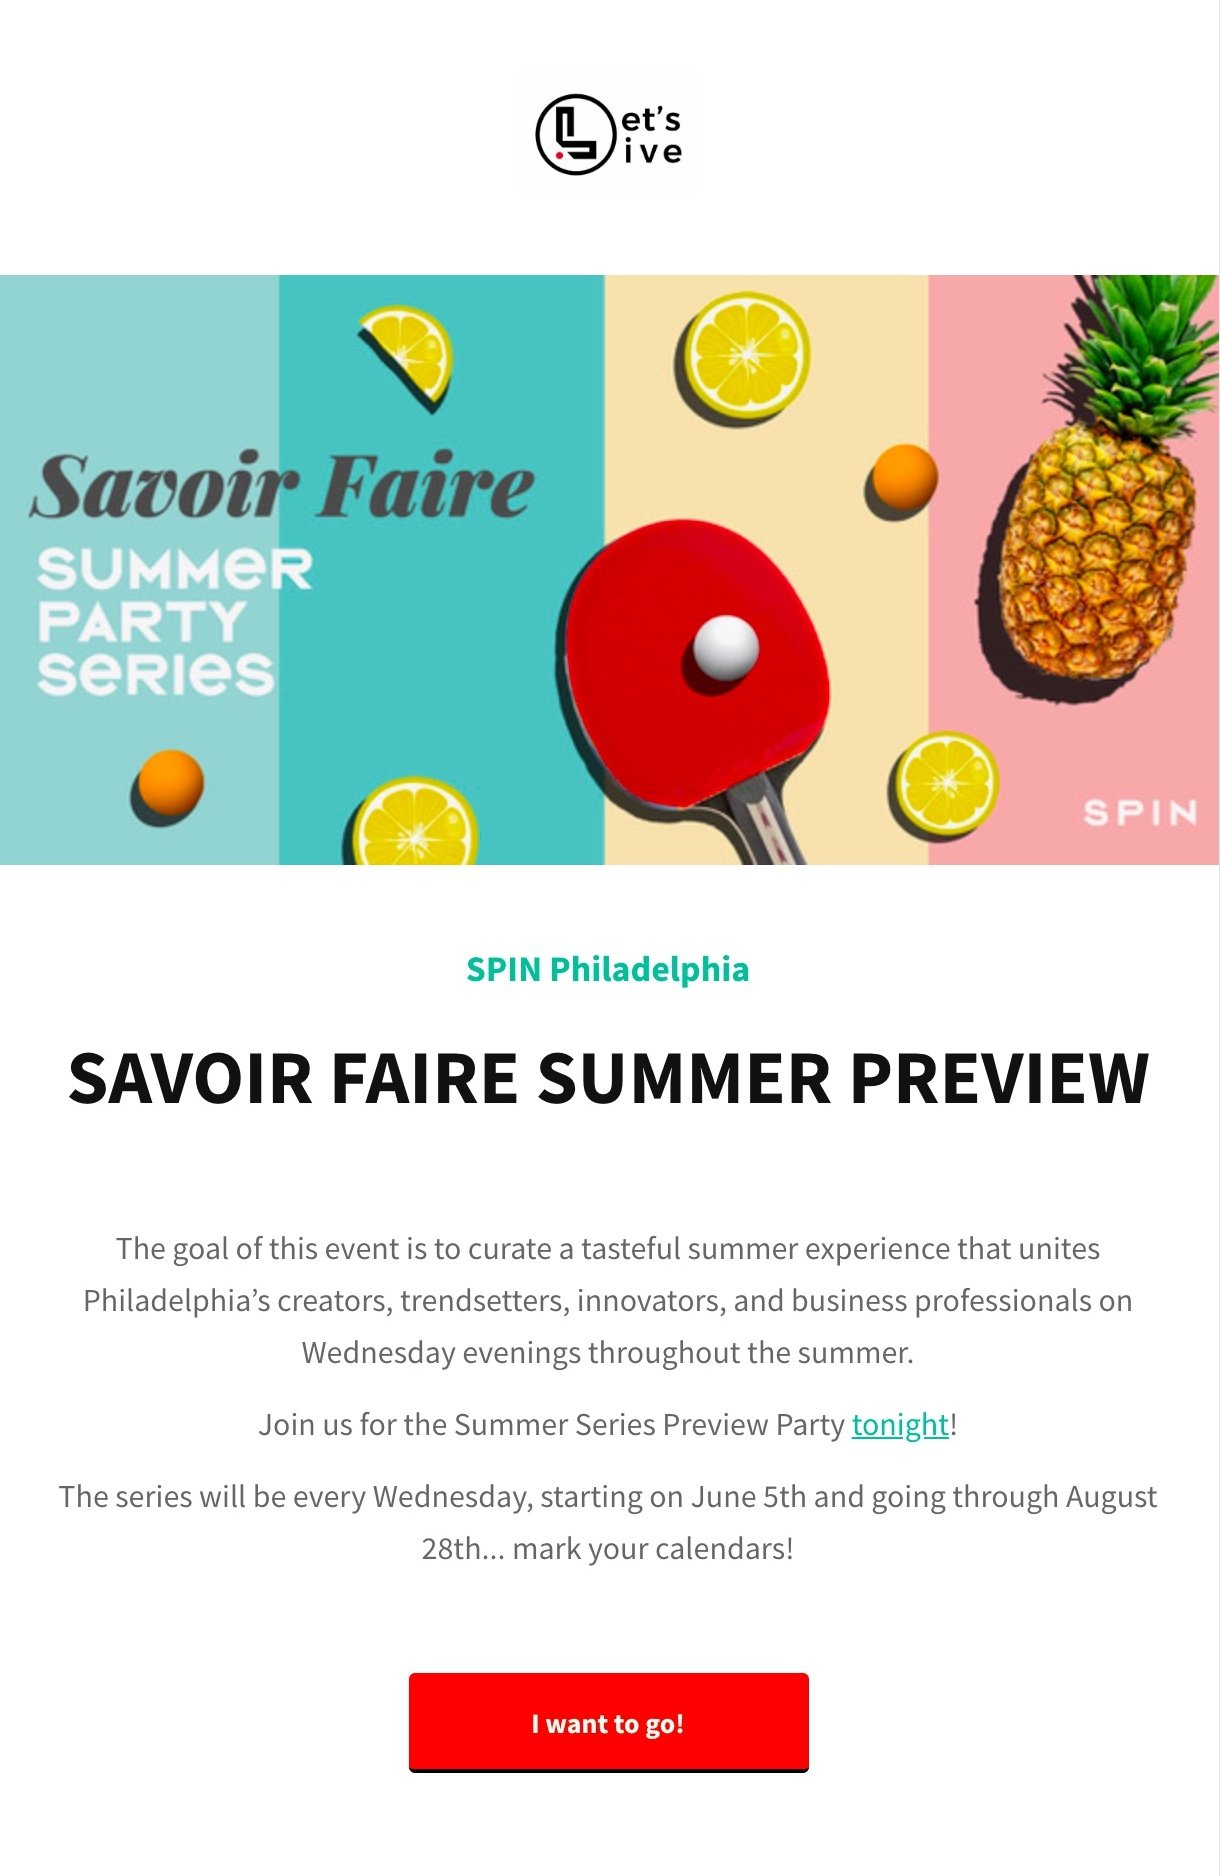 SPIN Philadelphia newsletter